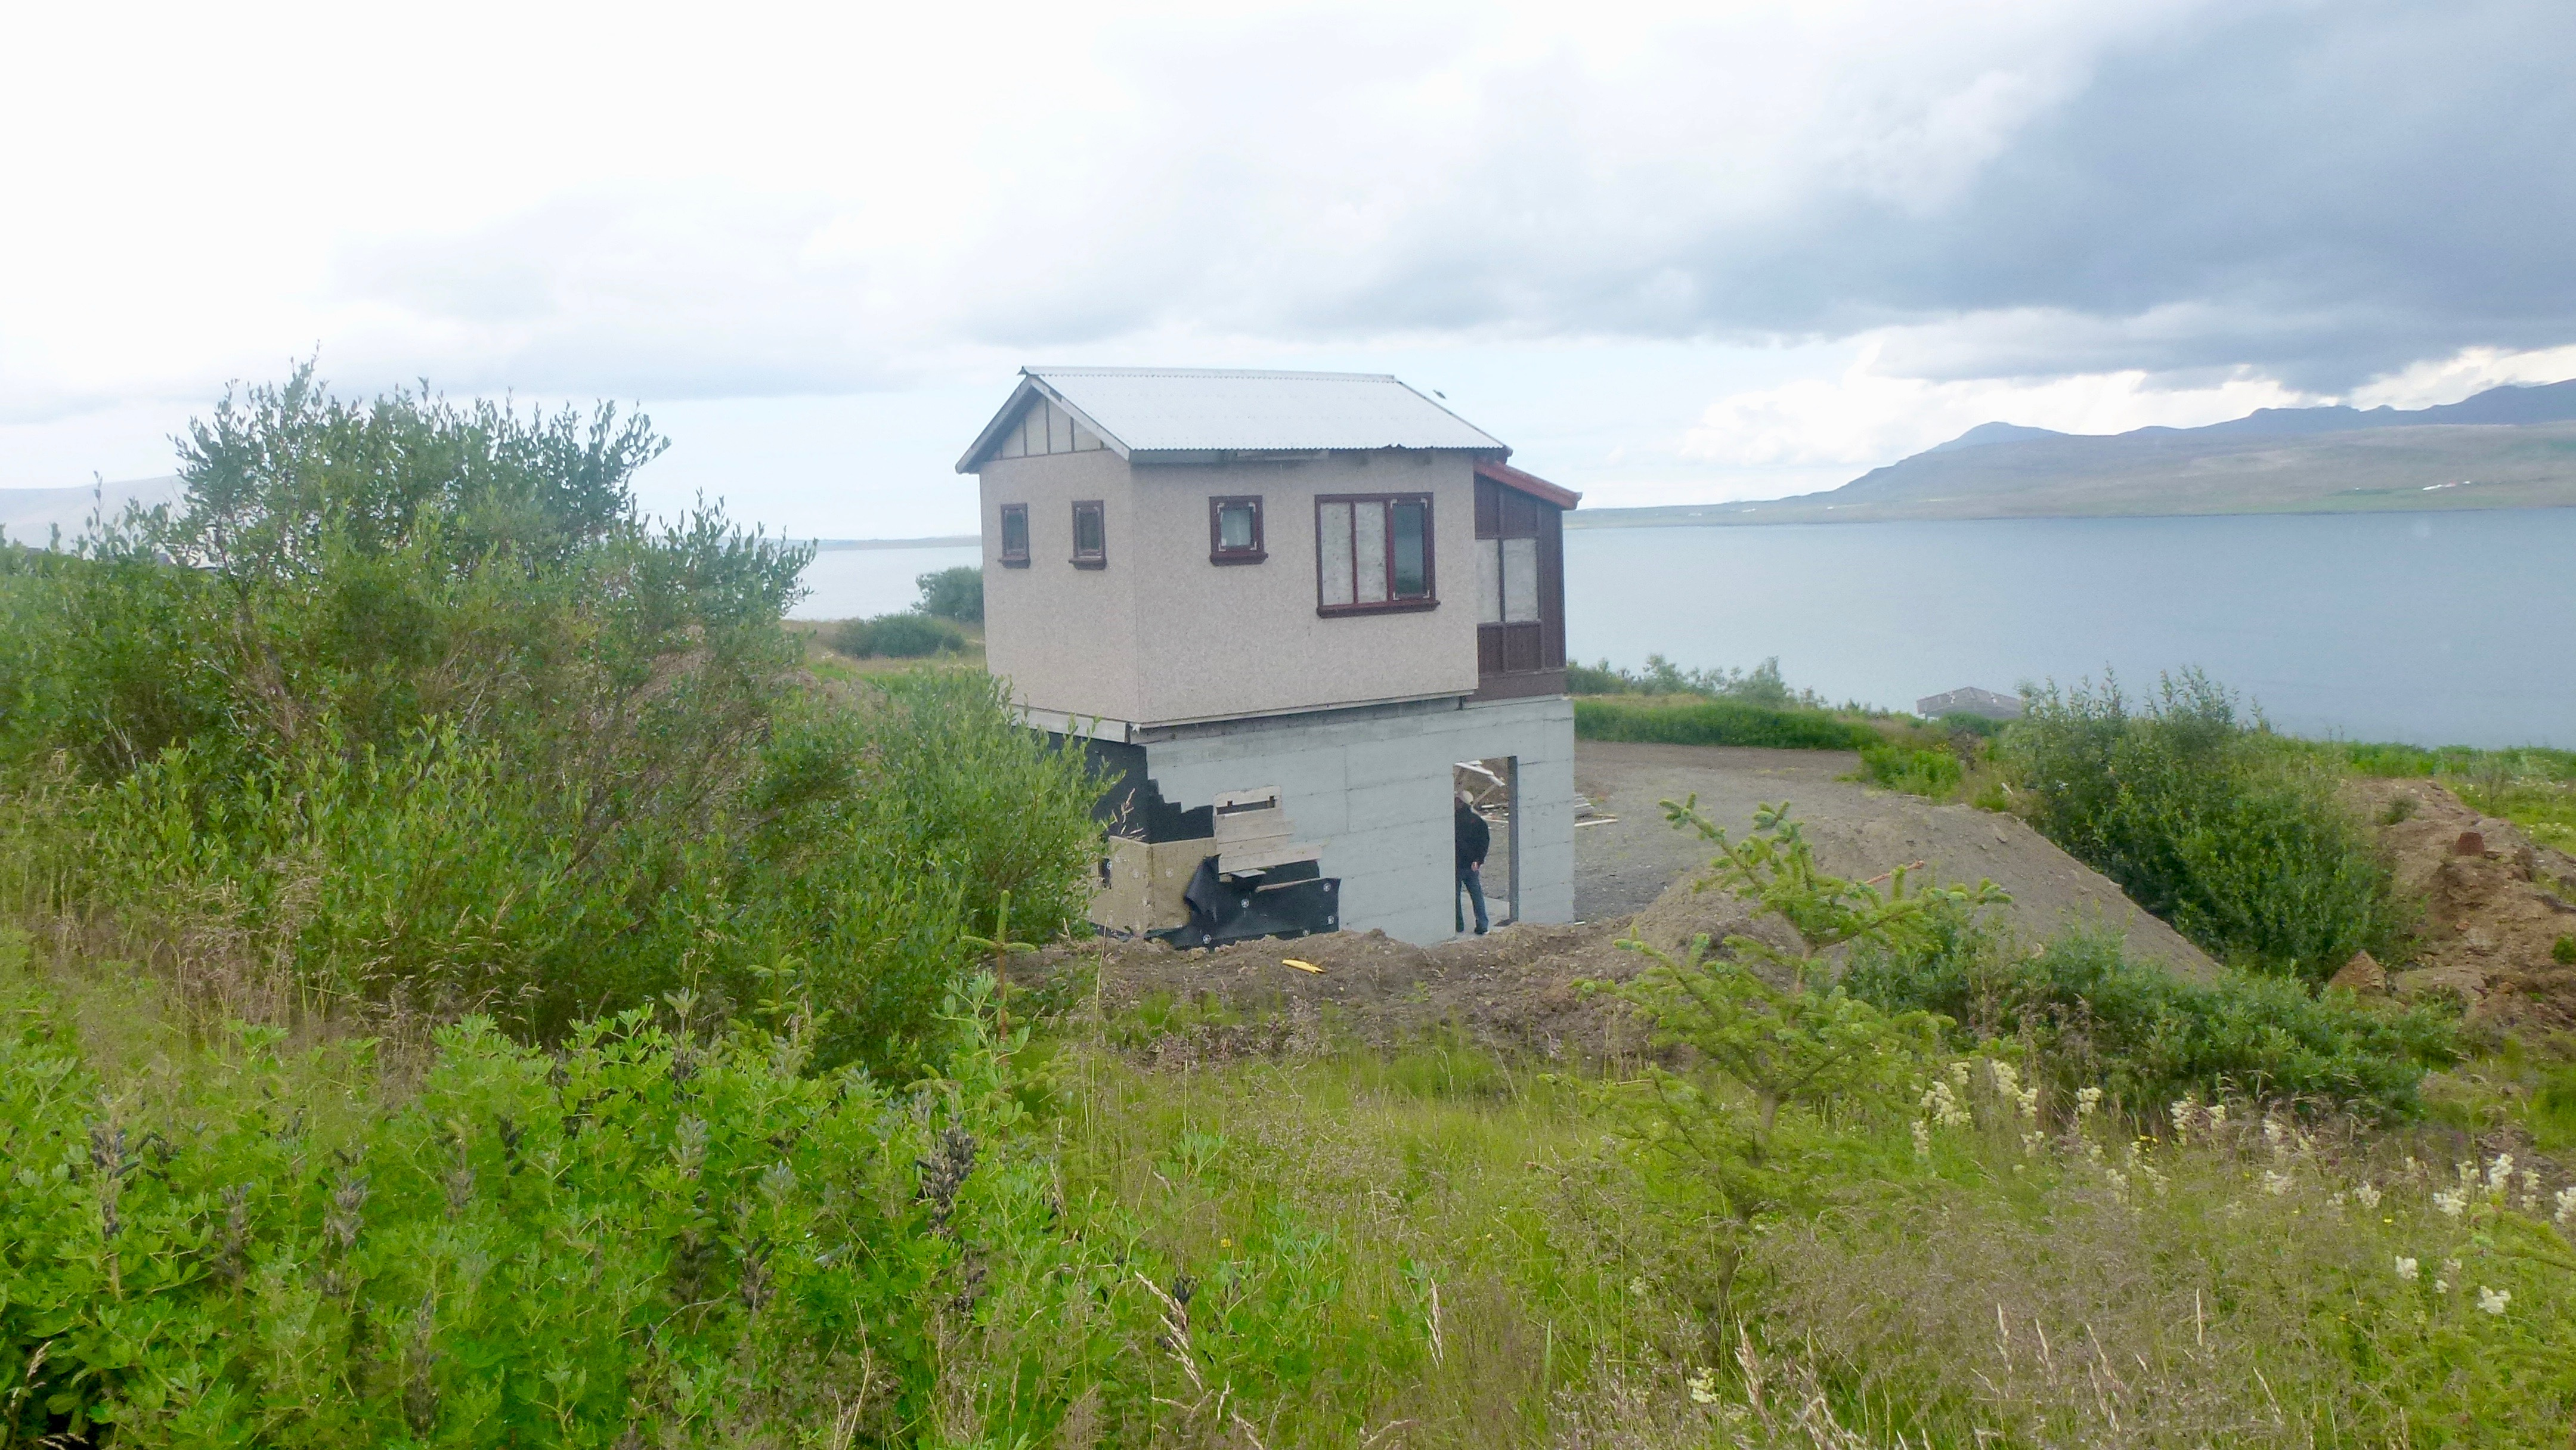 Housing Bubble Iceland: What is going to happen?